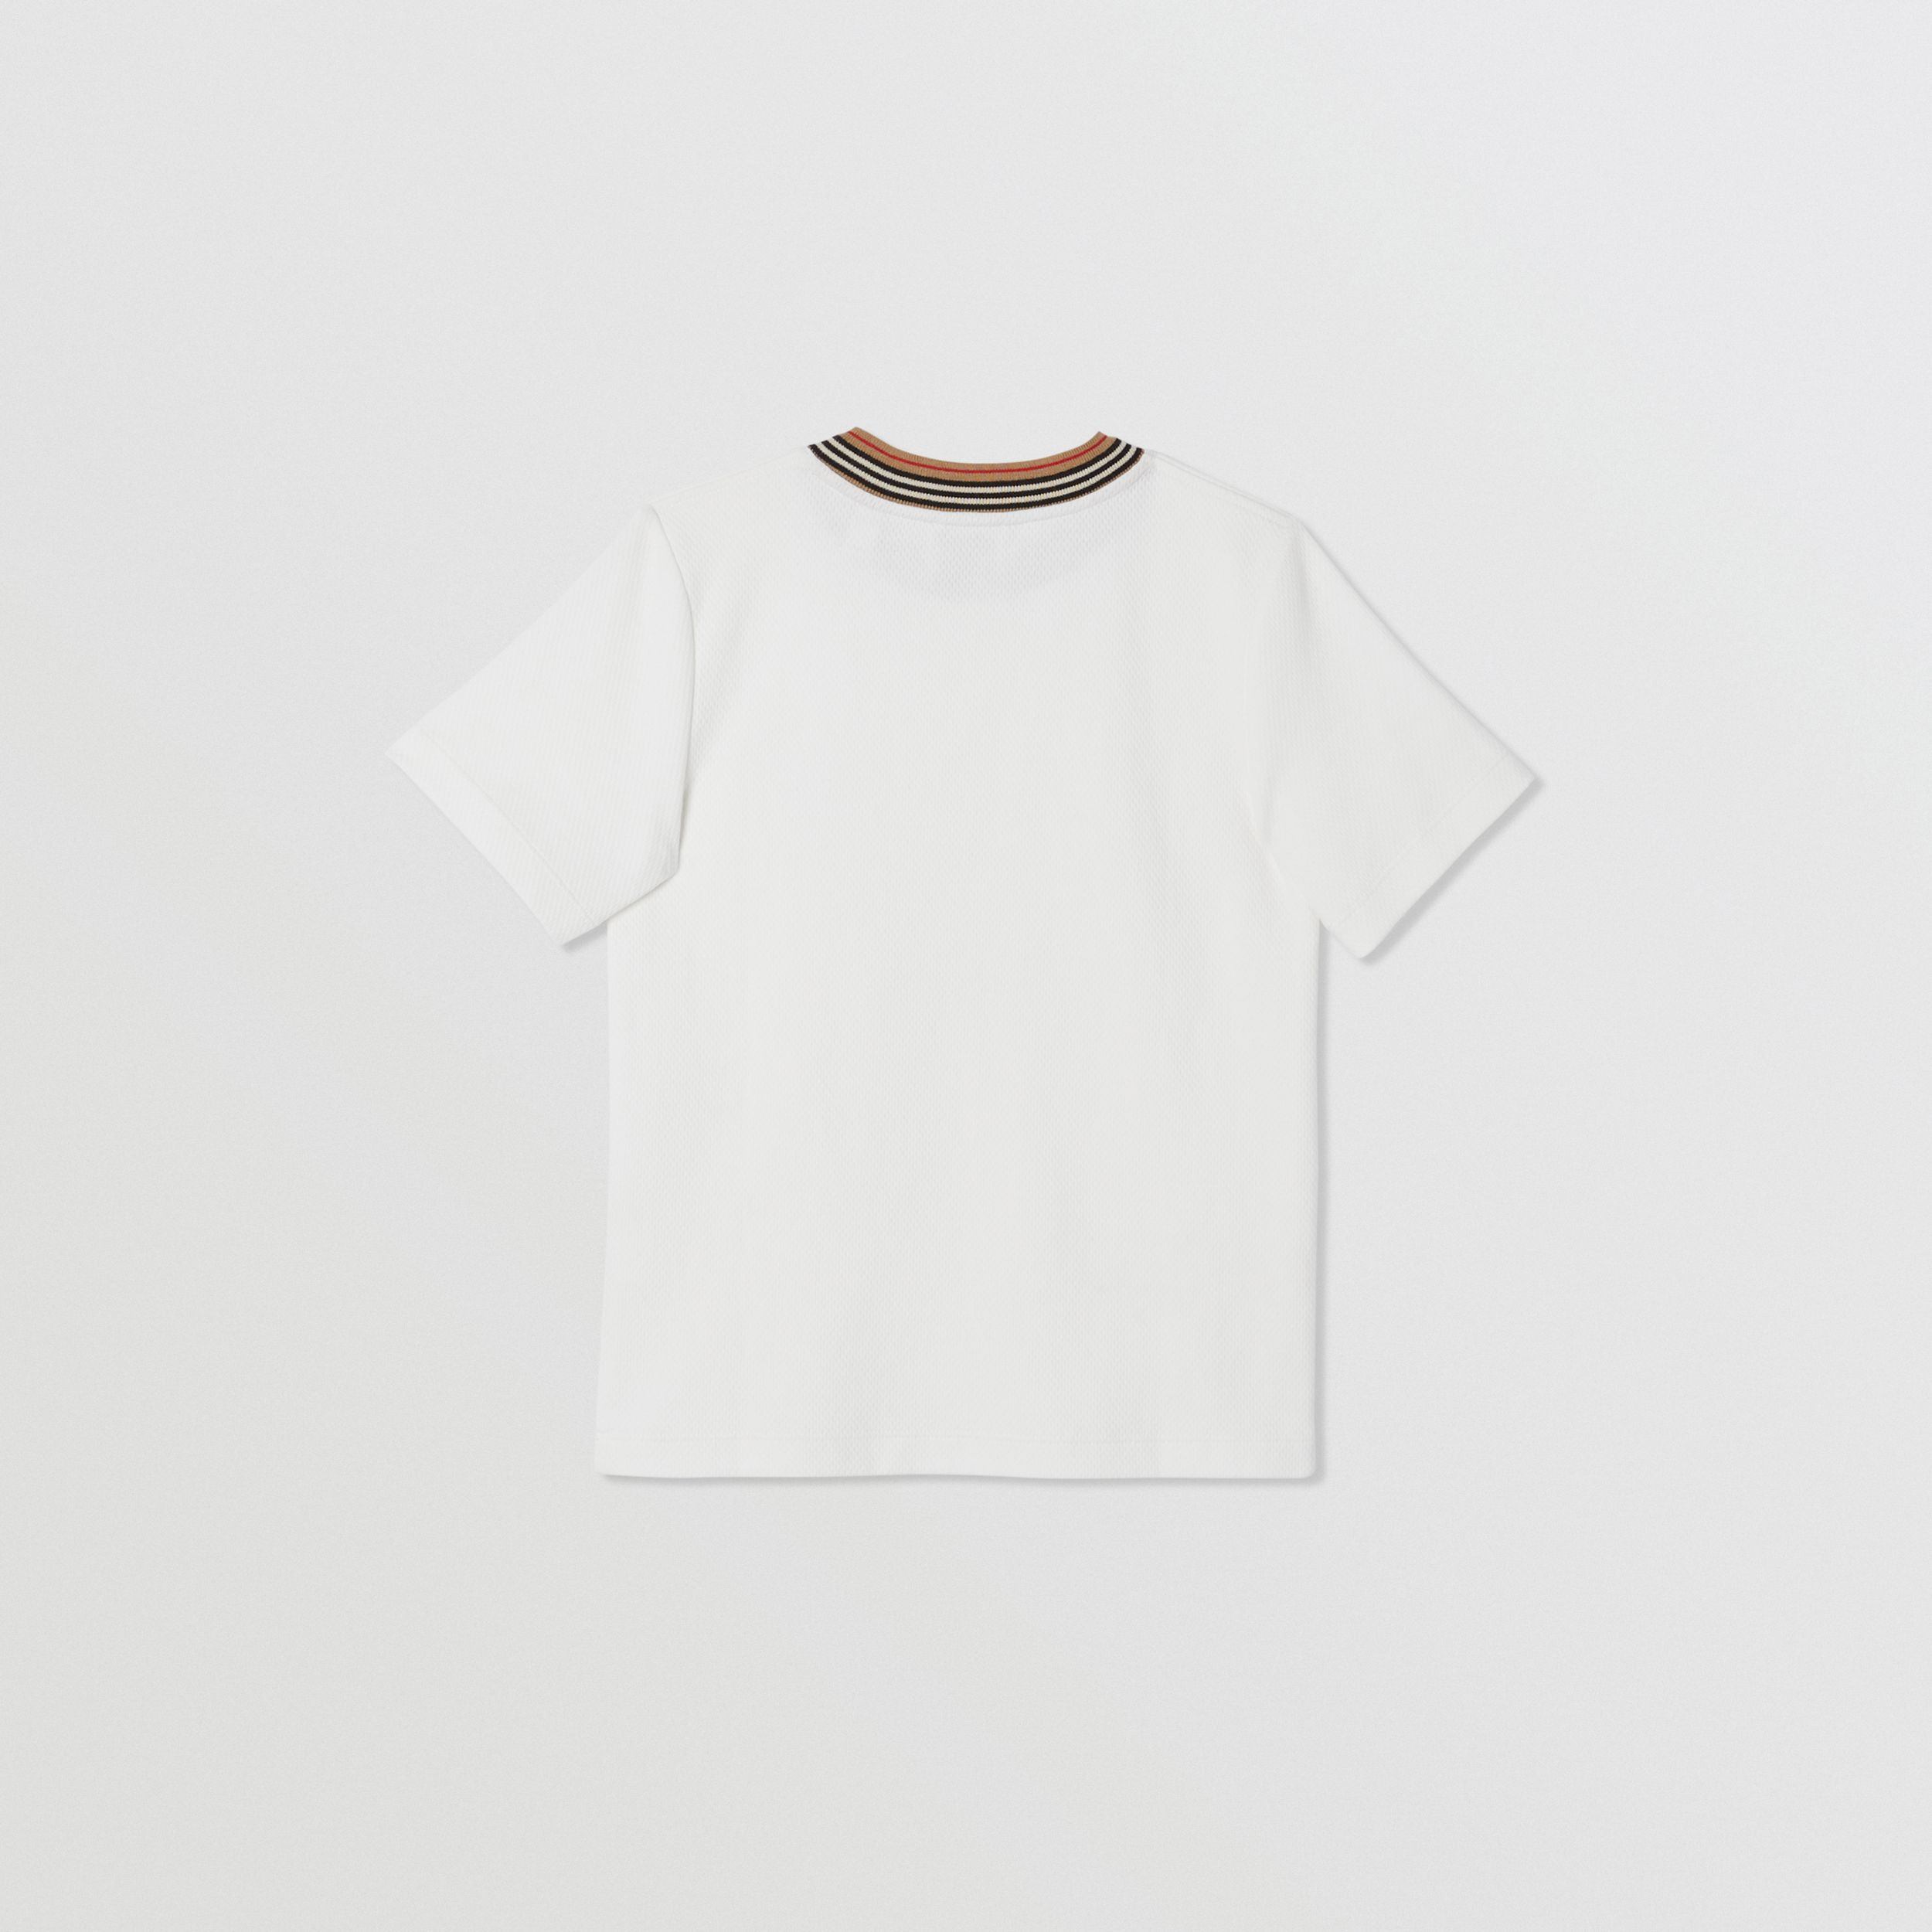 Contrast Logo Graphic Jersey Mesh T-shirt in White | Burberry - 4